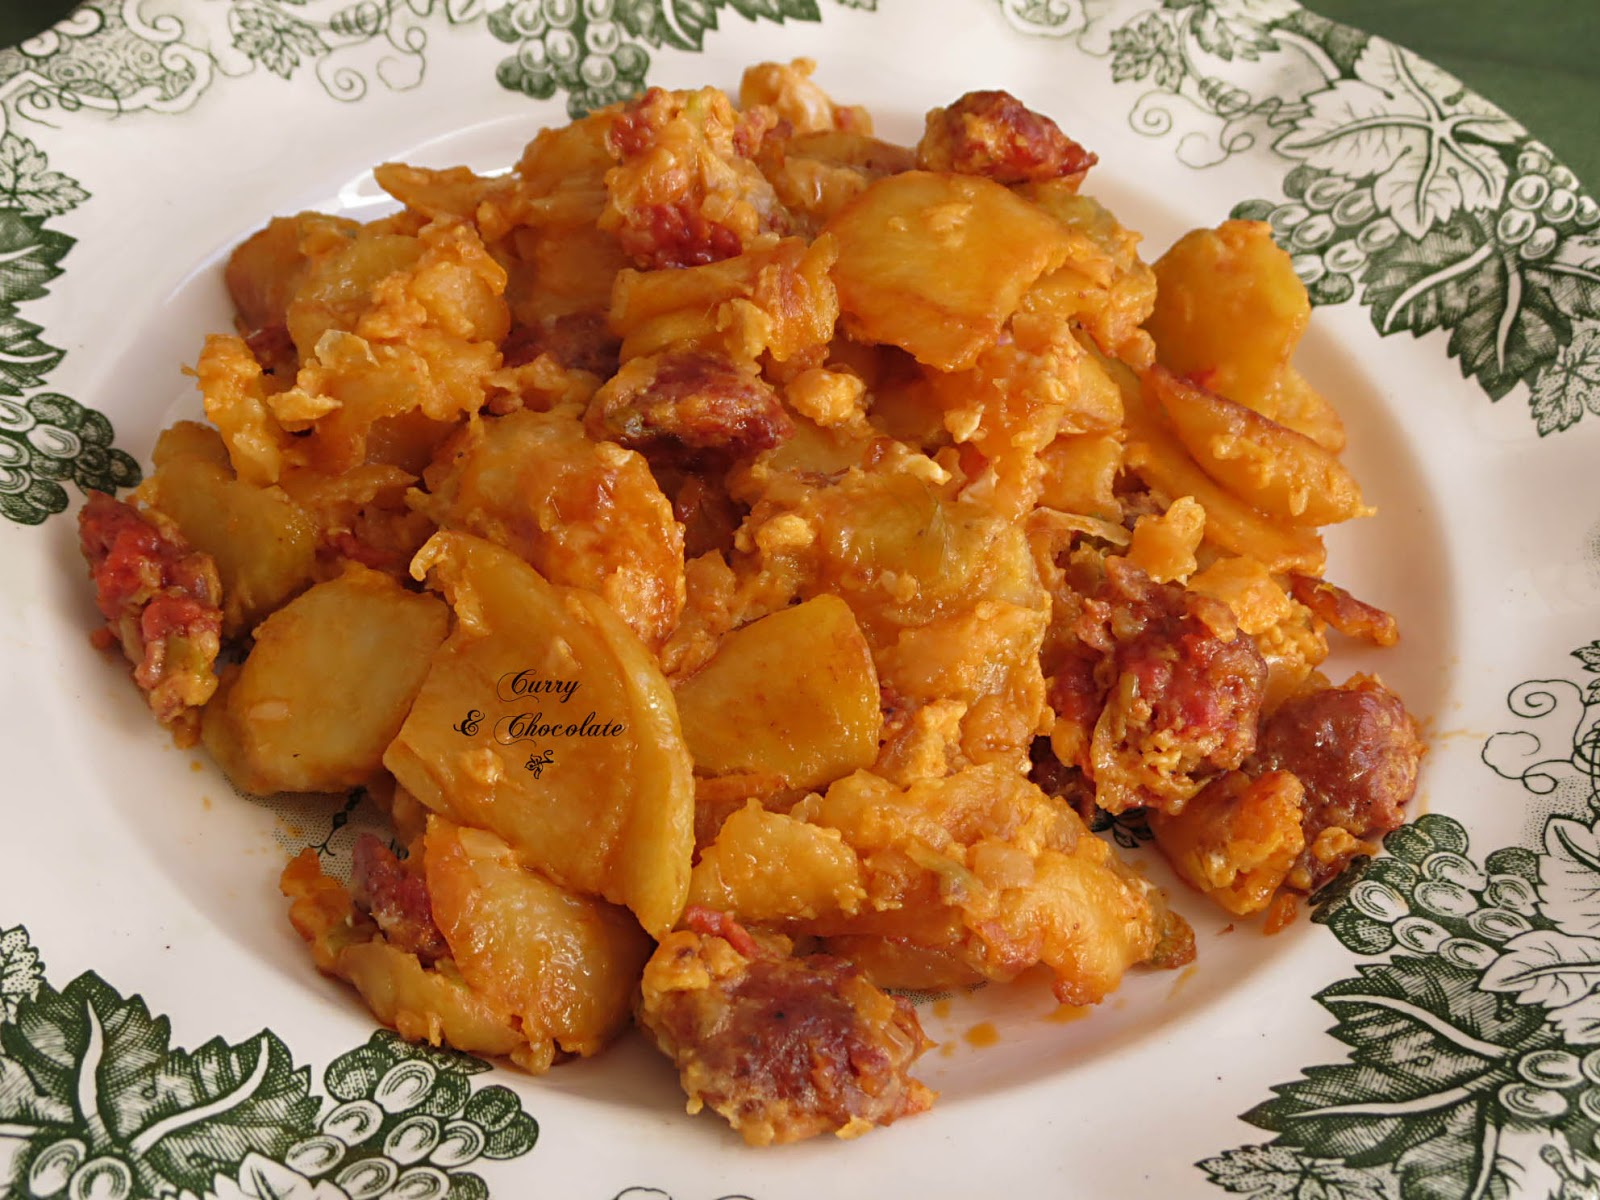 Patatas fritas con chorizo y huevo - Fried potatoes with fresh chorizo and egg